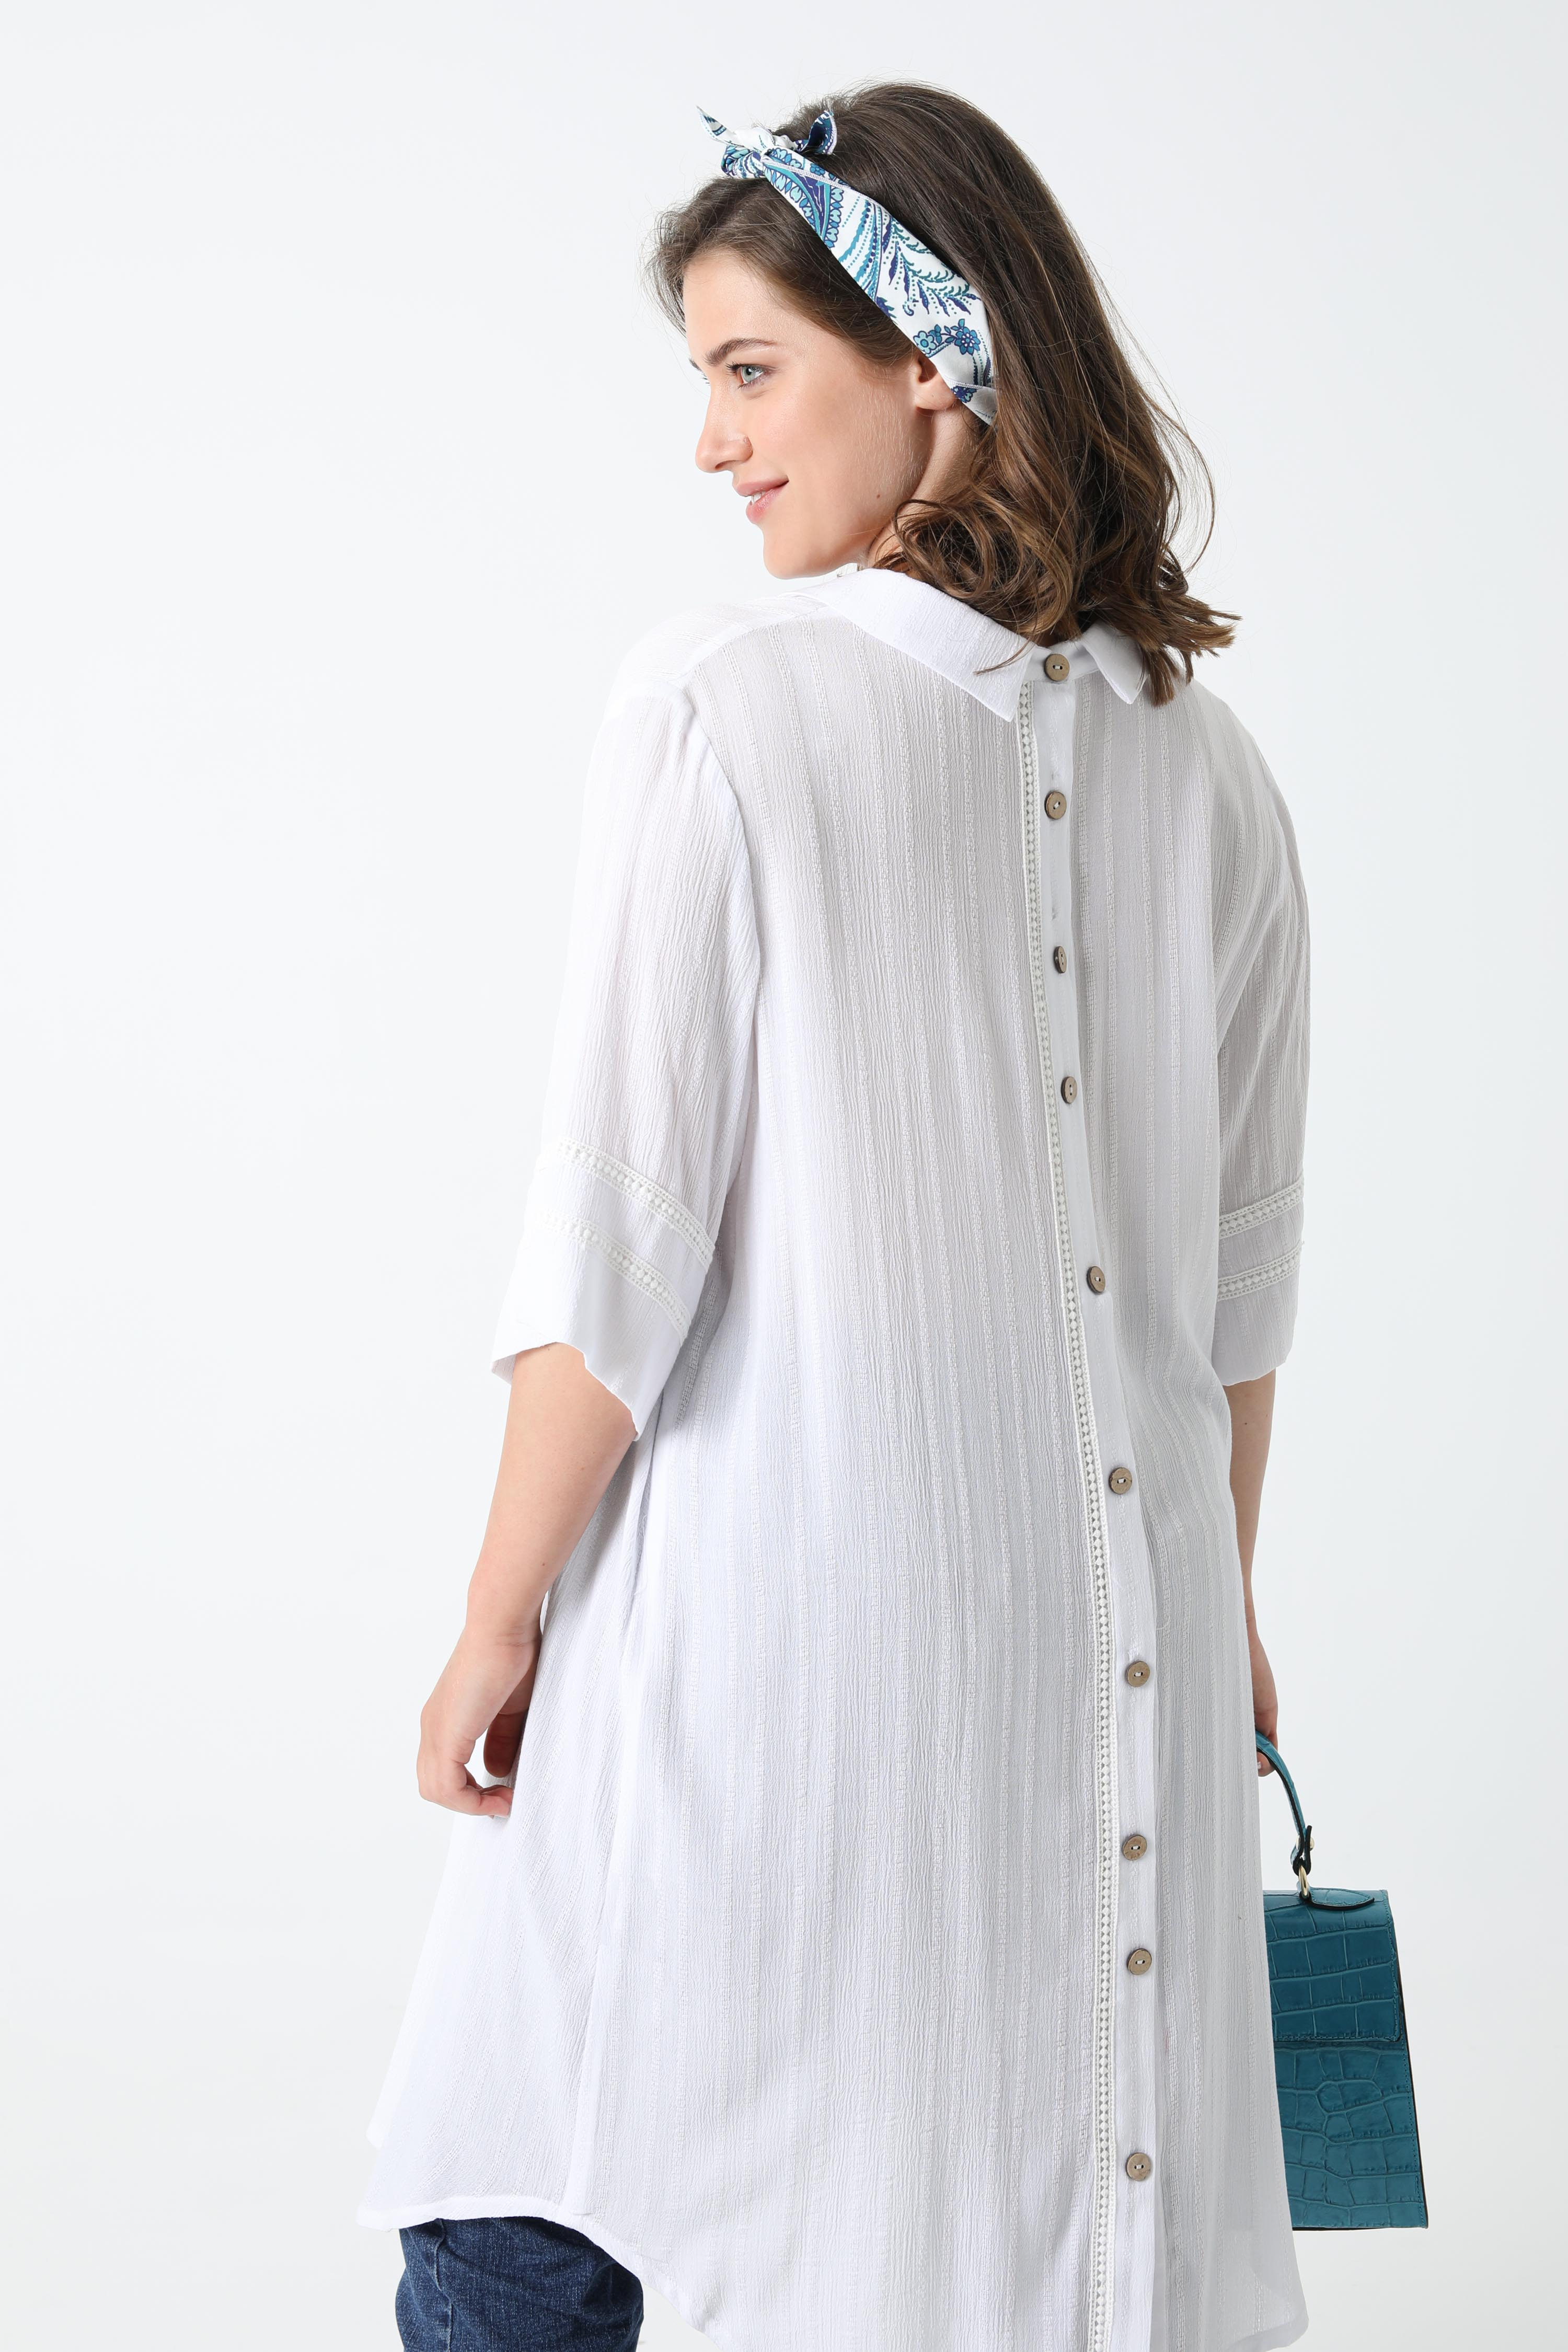 Long shirt in striped effect viscose crepe (shipping April 10/15).